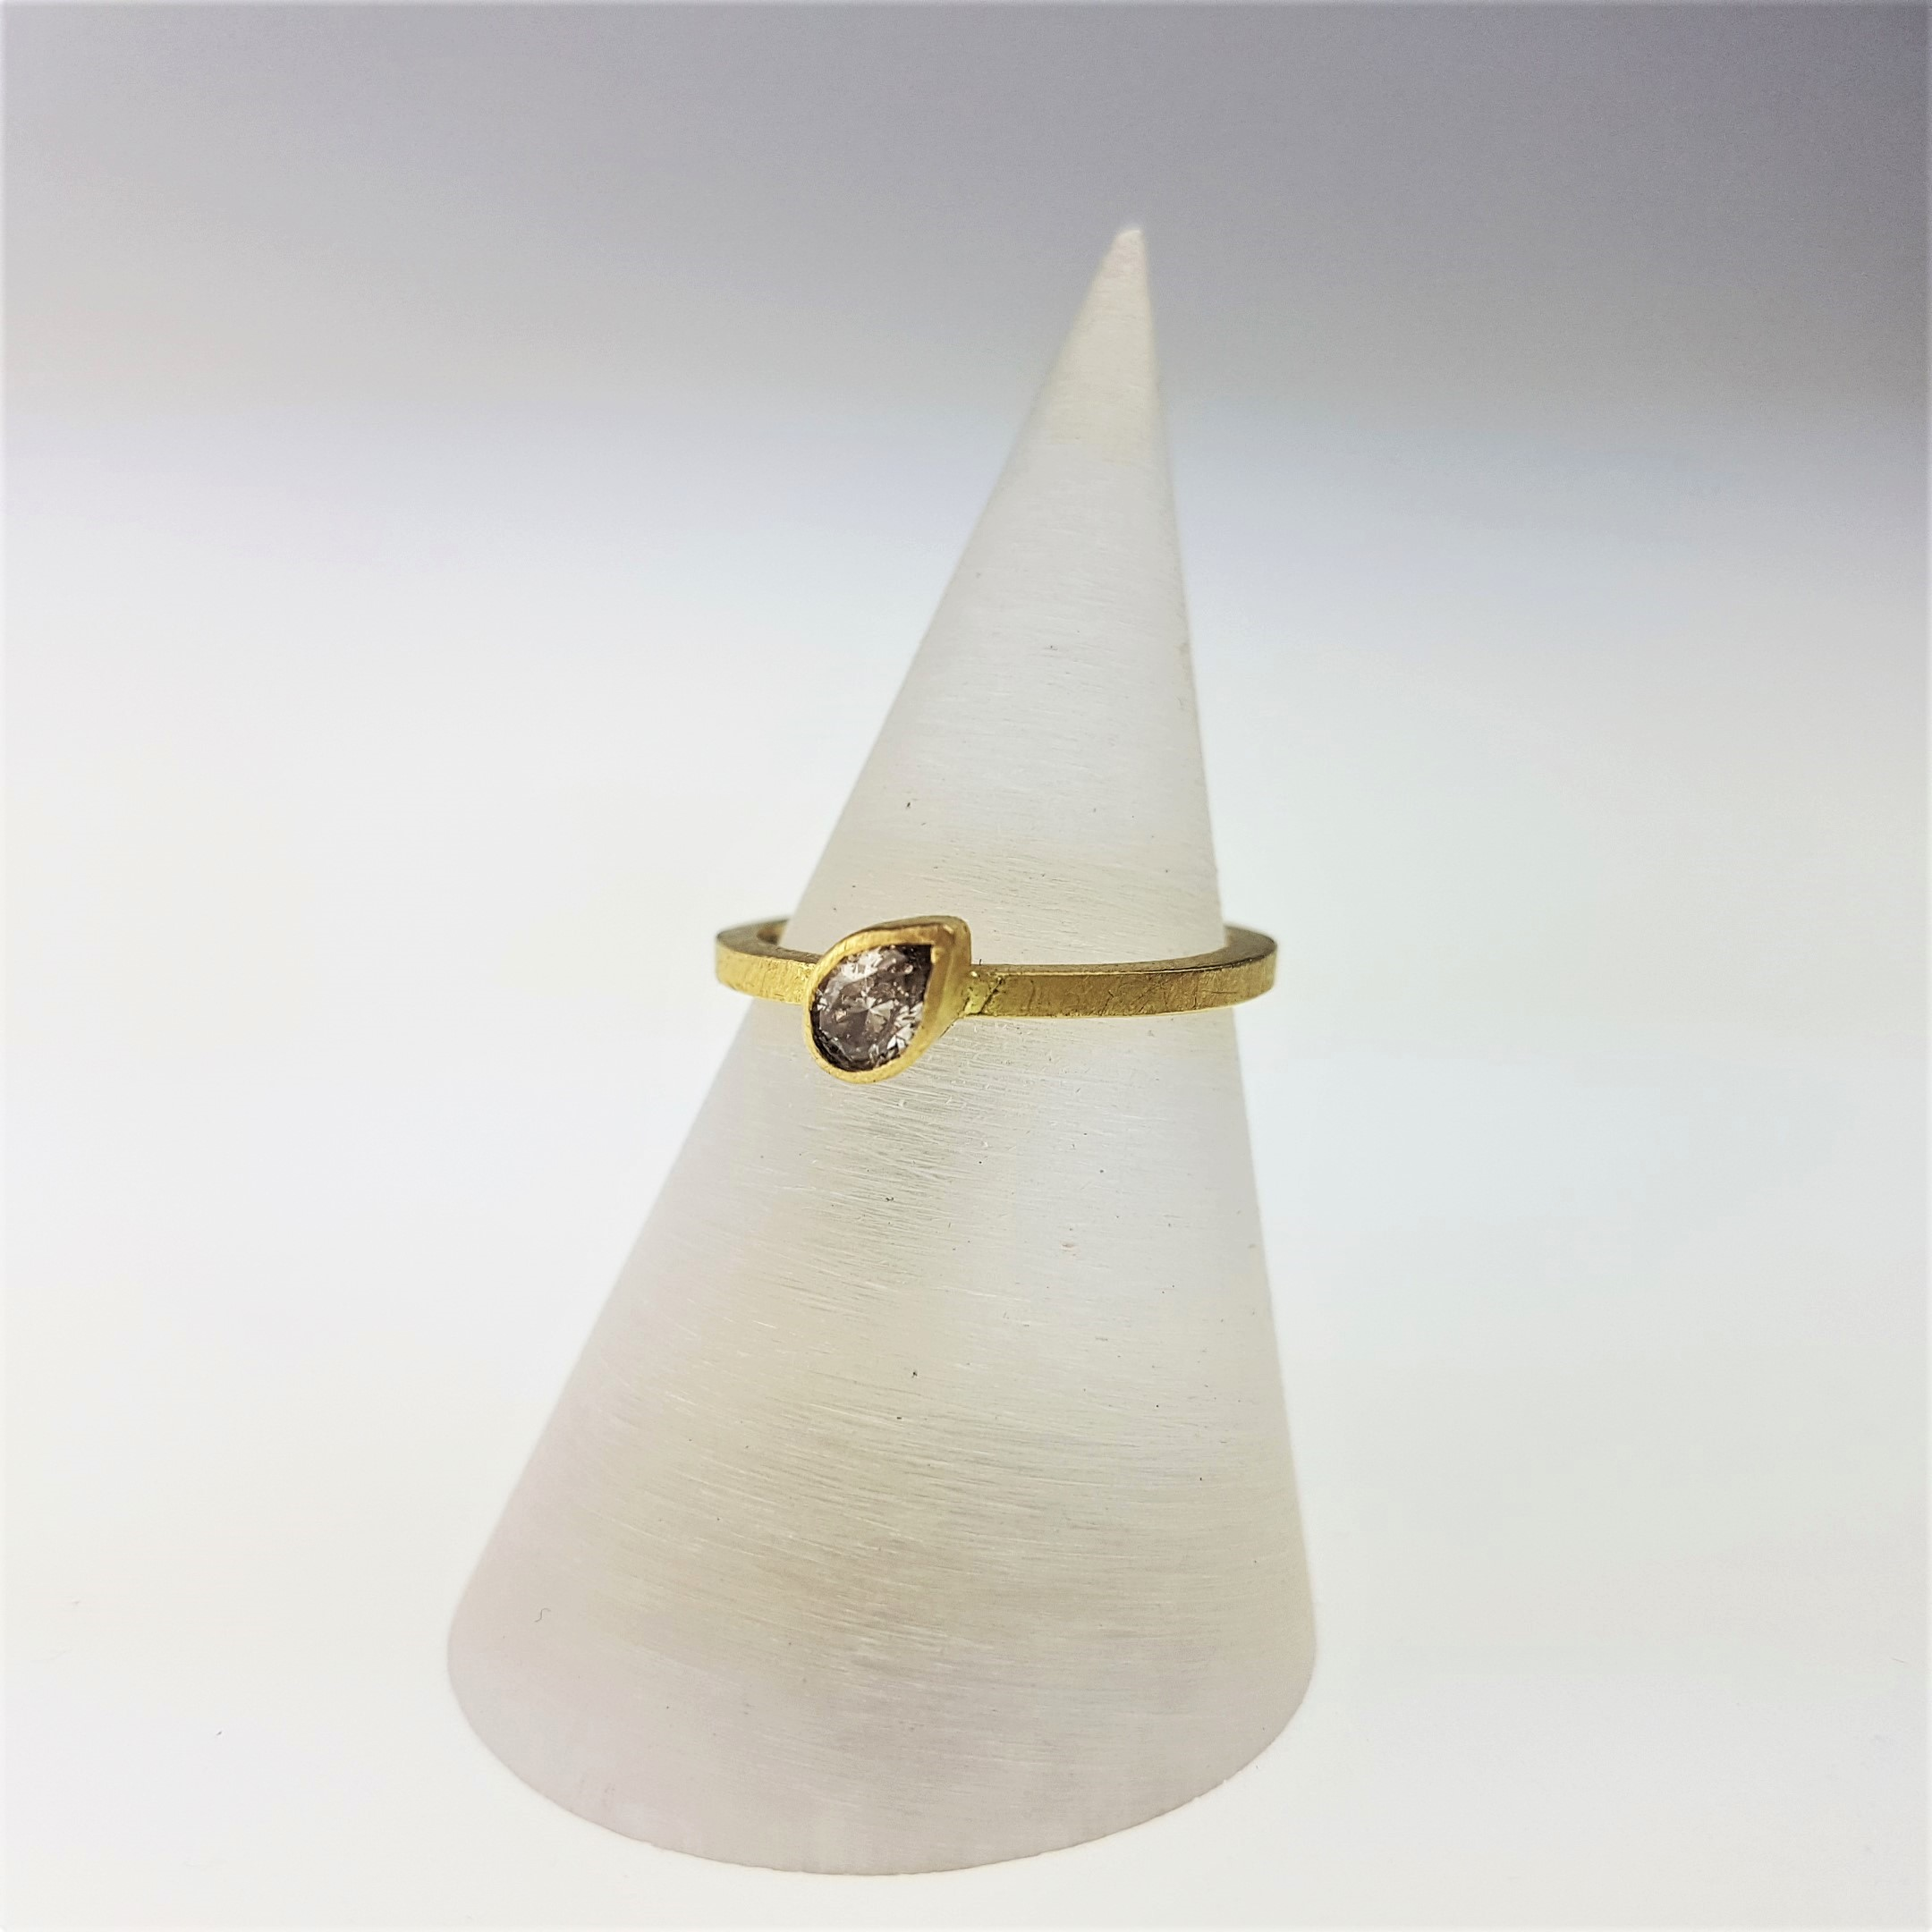 Asymmetry - Our in house goldsmith Rachel Jones completed her masters at The Royal College of Art in 2018 specialising in gold alloys, a true modern alchemist. Specialising in modern luxury, this beautiful pear cut champagne diamond is set at a contemporary angle on a crisp edged 18ct gold band in her signature matt brushed finish, £1100.